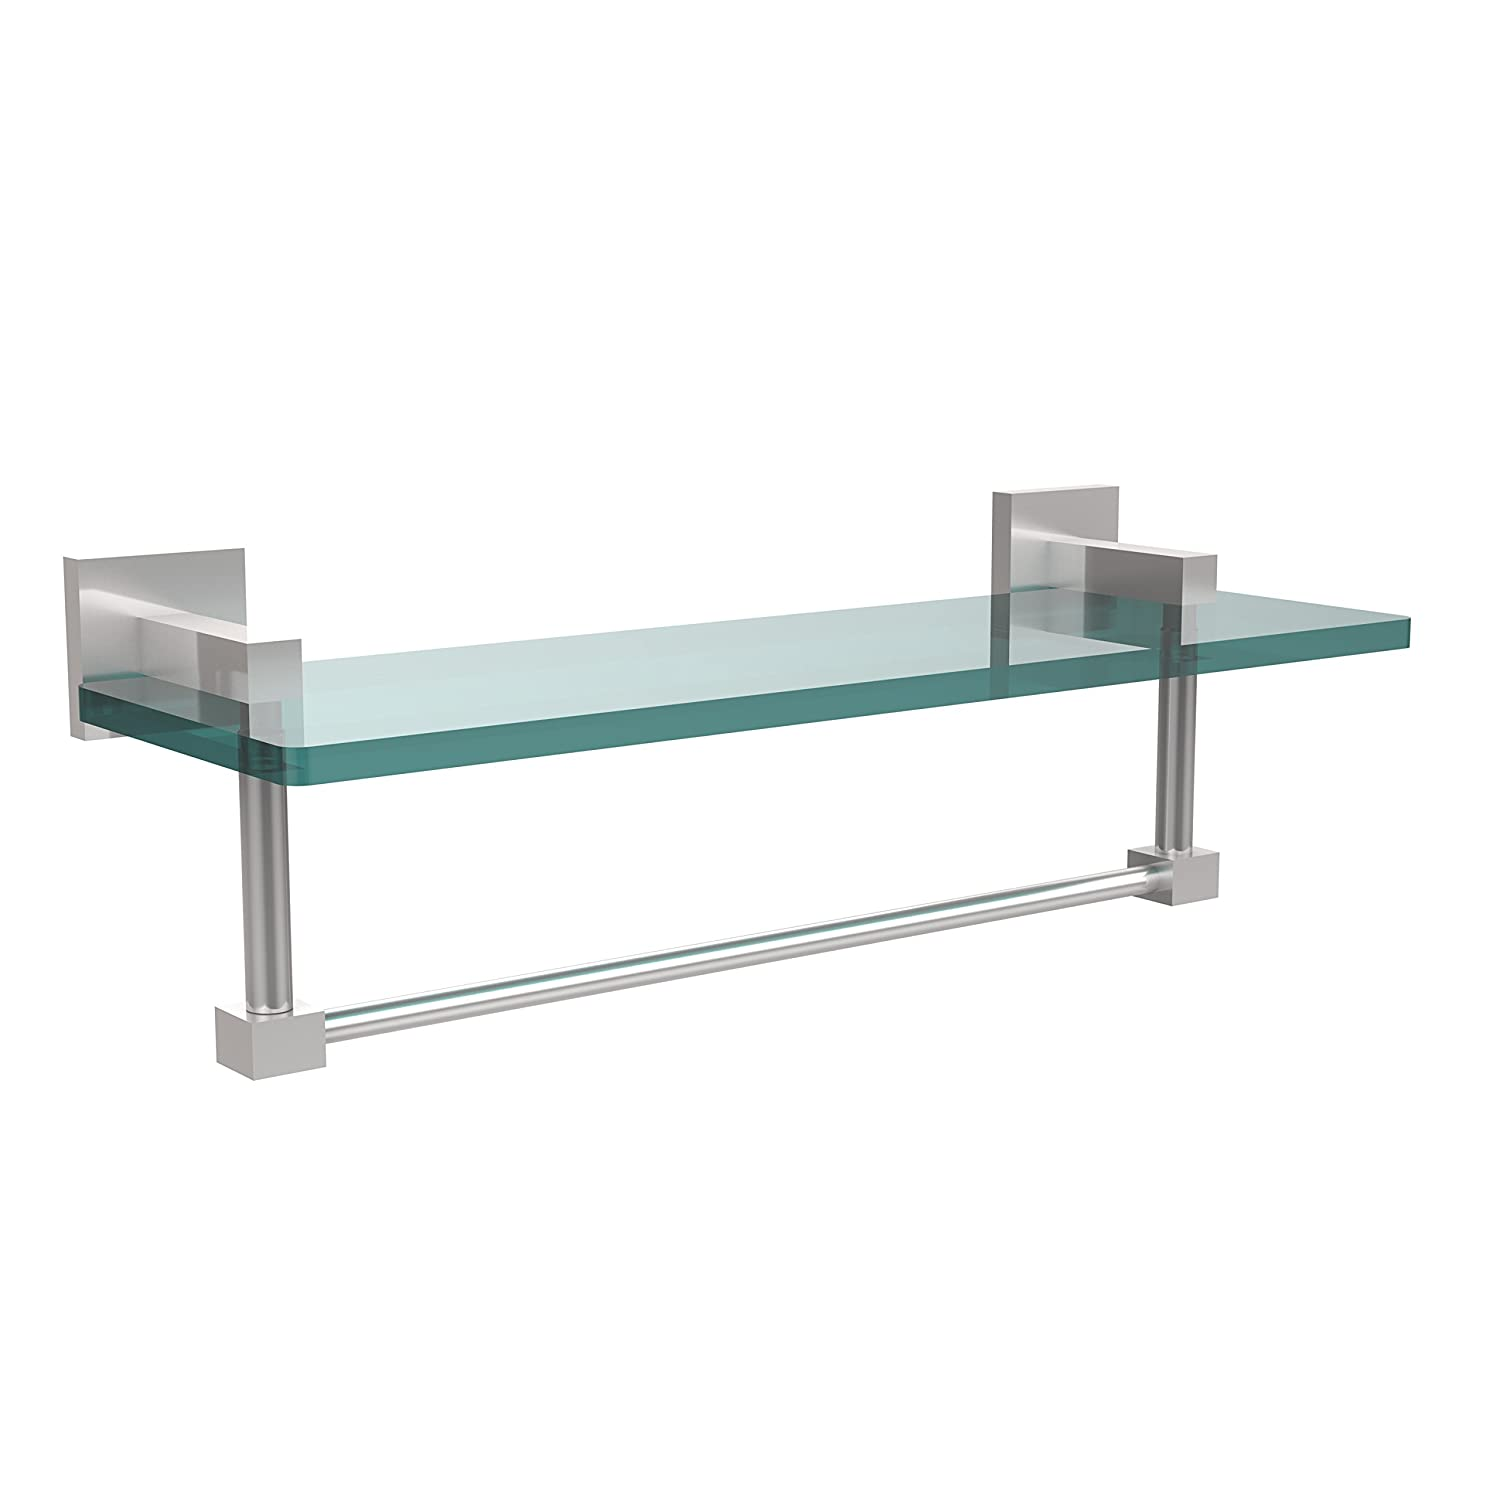 Allld Allied Brass MT-1-16TB-SCH Montero Collection 41cm Glass Vanity Shelf with Integrated Towel Bar, B01DPULBMW クリア クリア